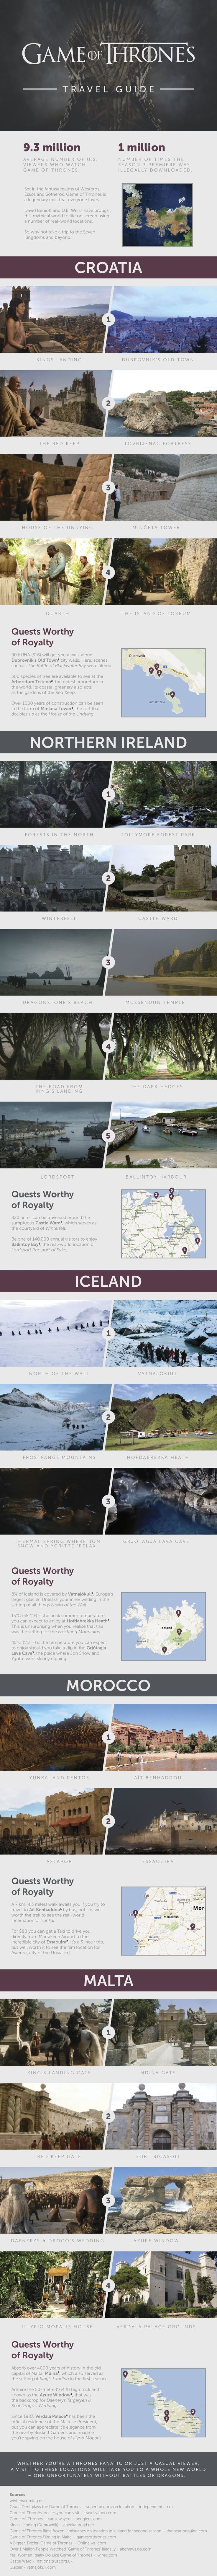 Game of Thrones travel guide @femme3